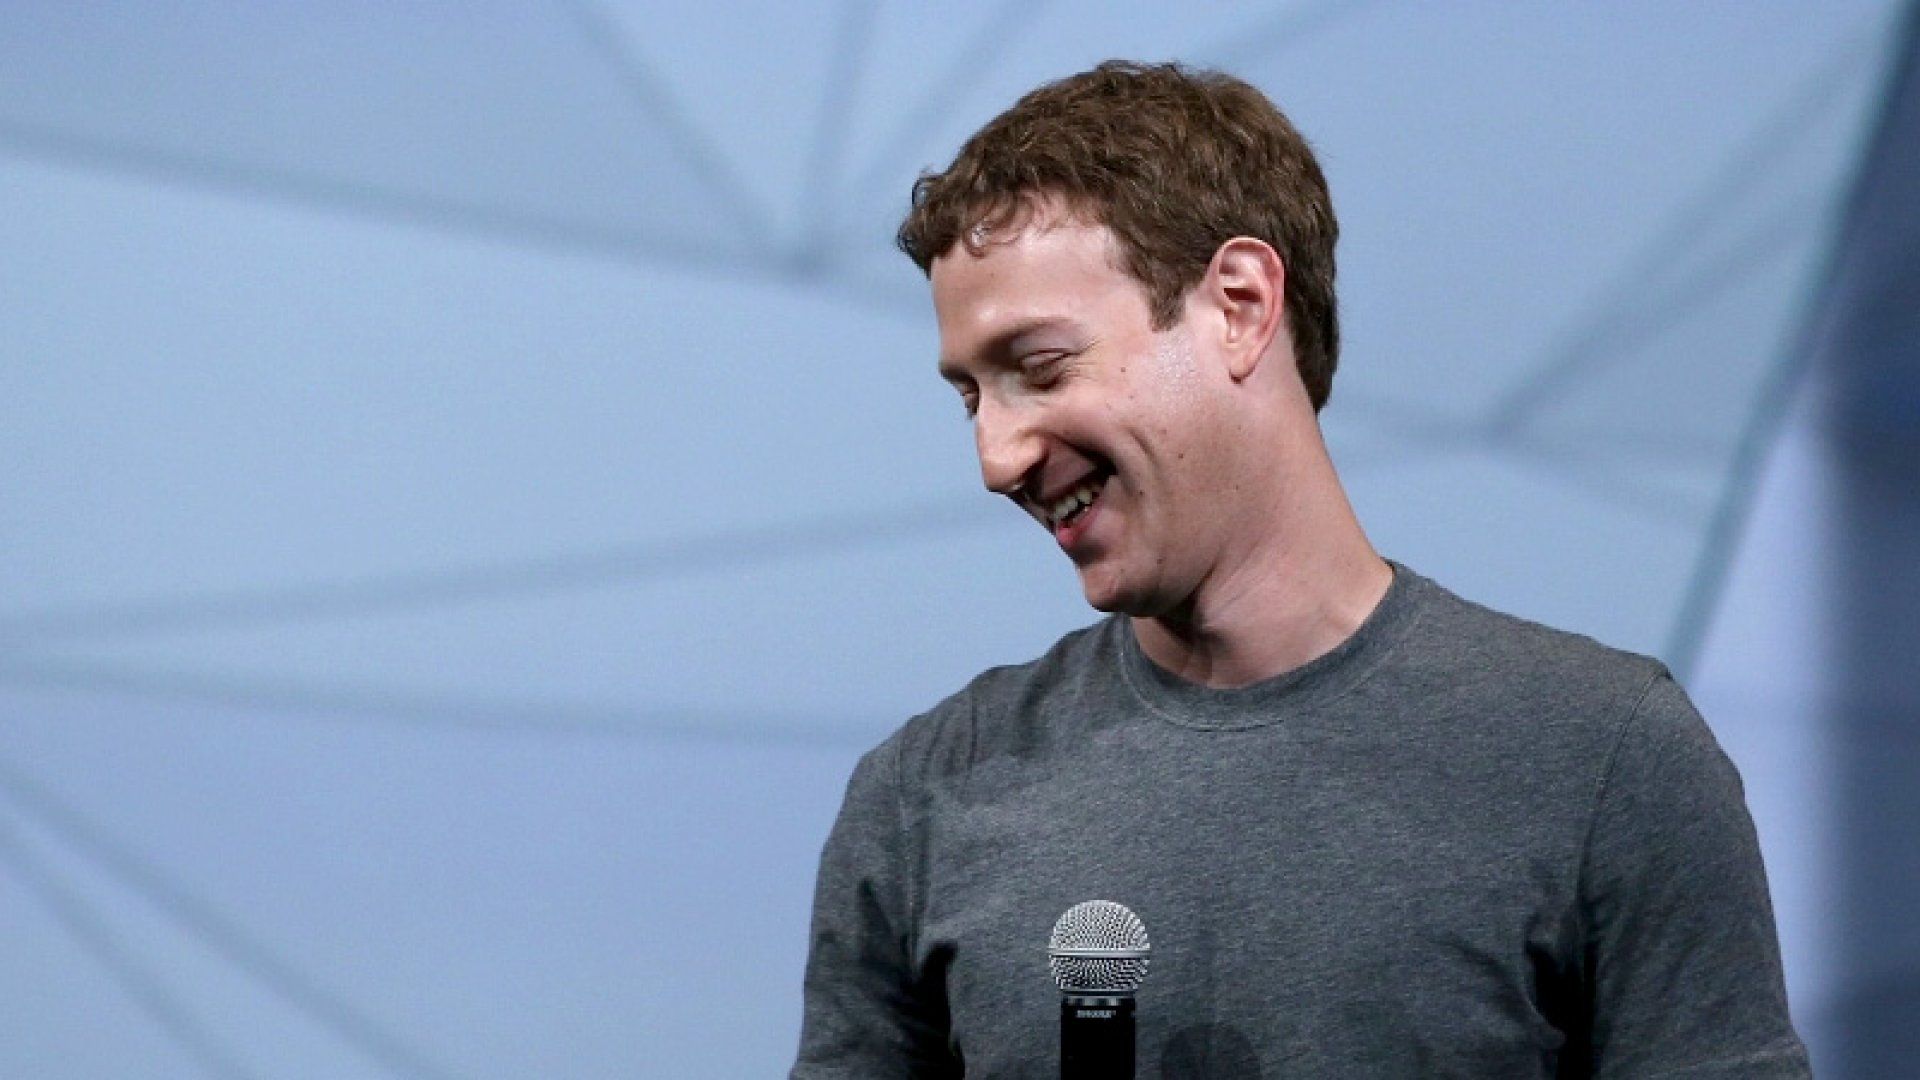 How to Set a Personal Challenge Like Mark Zuckerberg